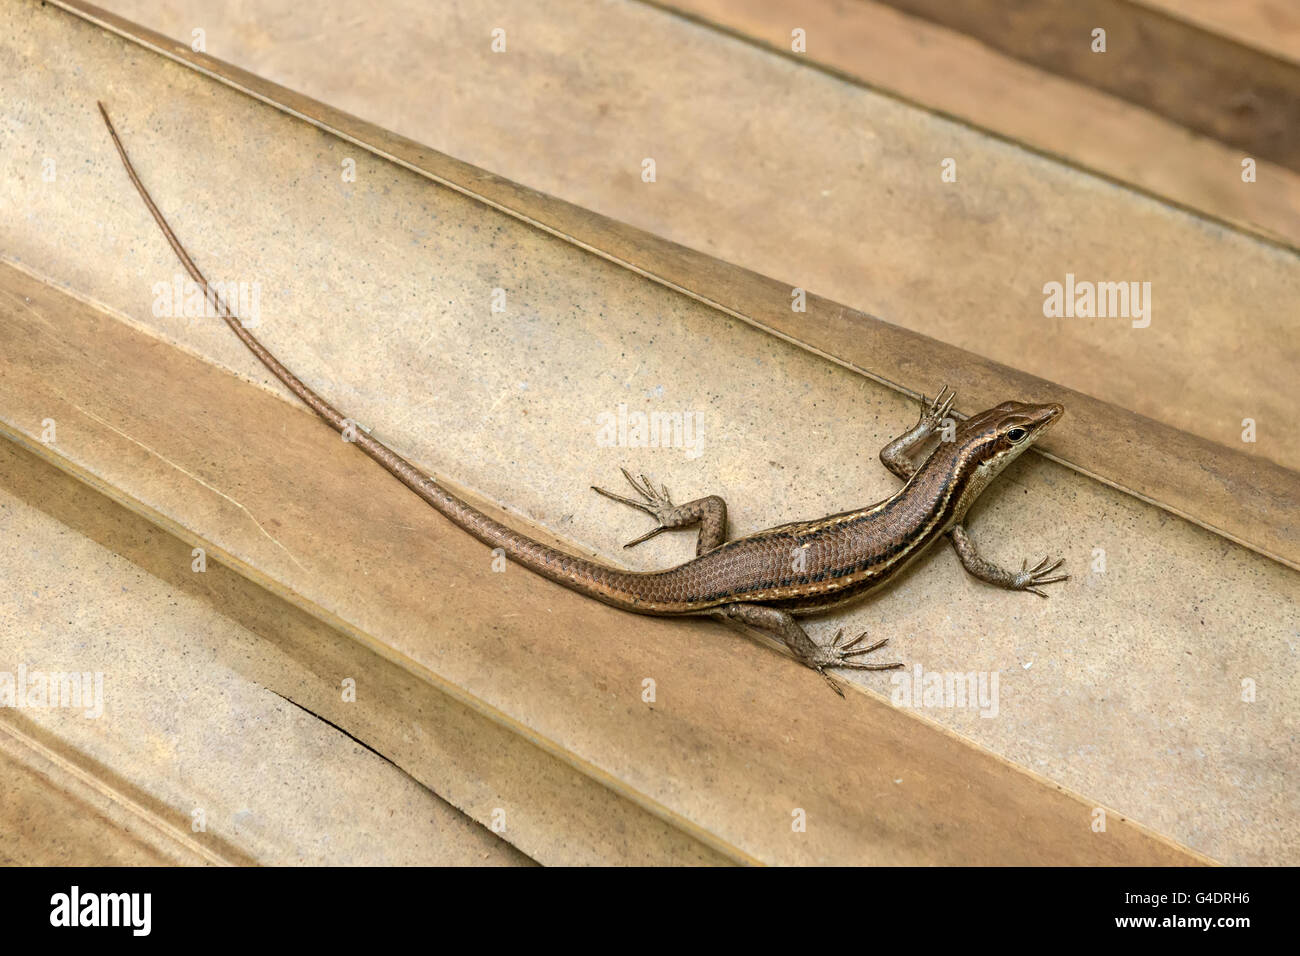 Trachylepis Seychellensis endemic species also called seychelles skink or Mabuya on a palm tree leaf - Stock Image